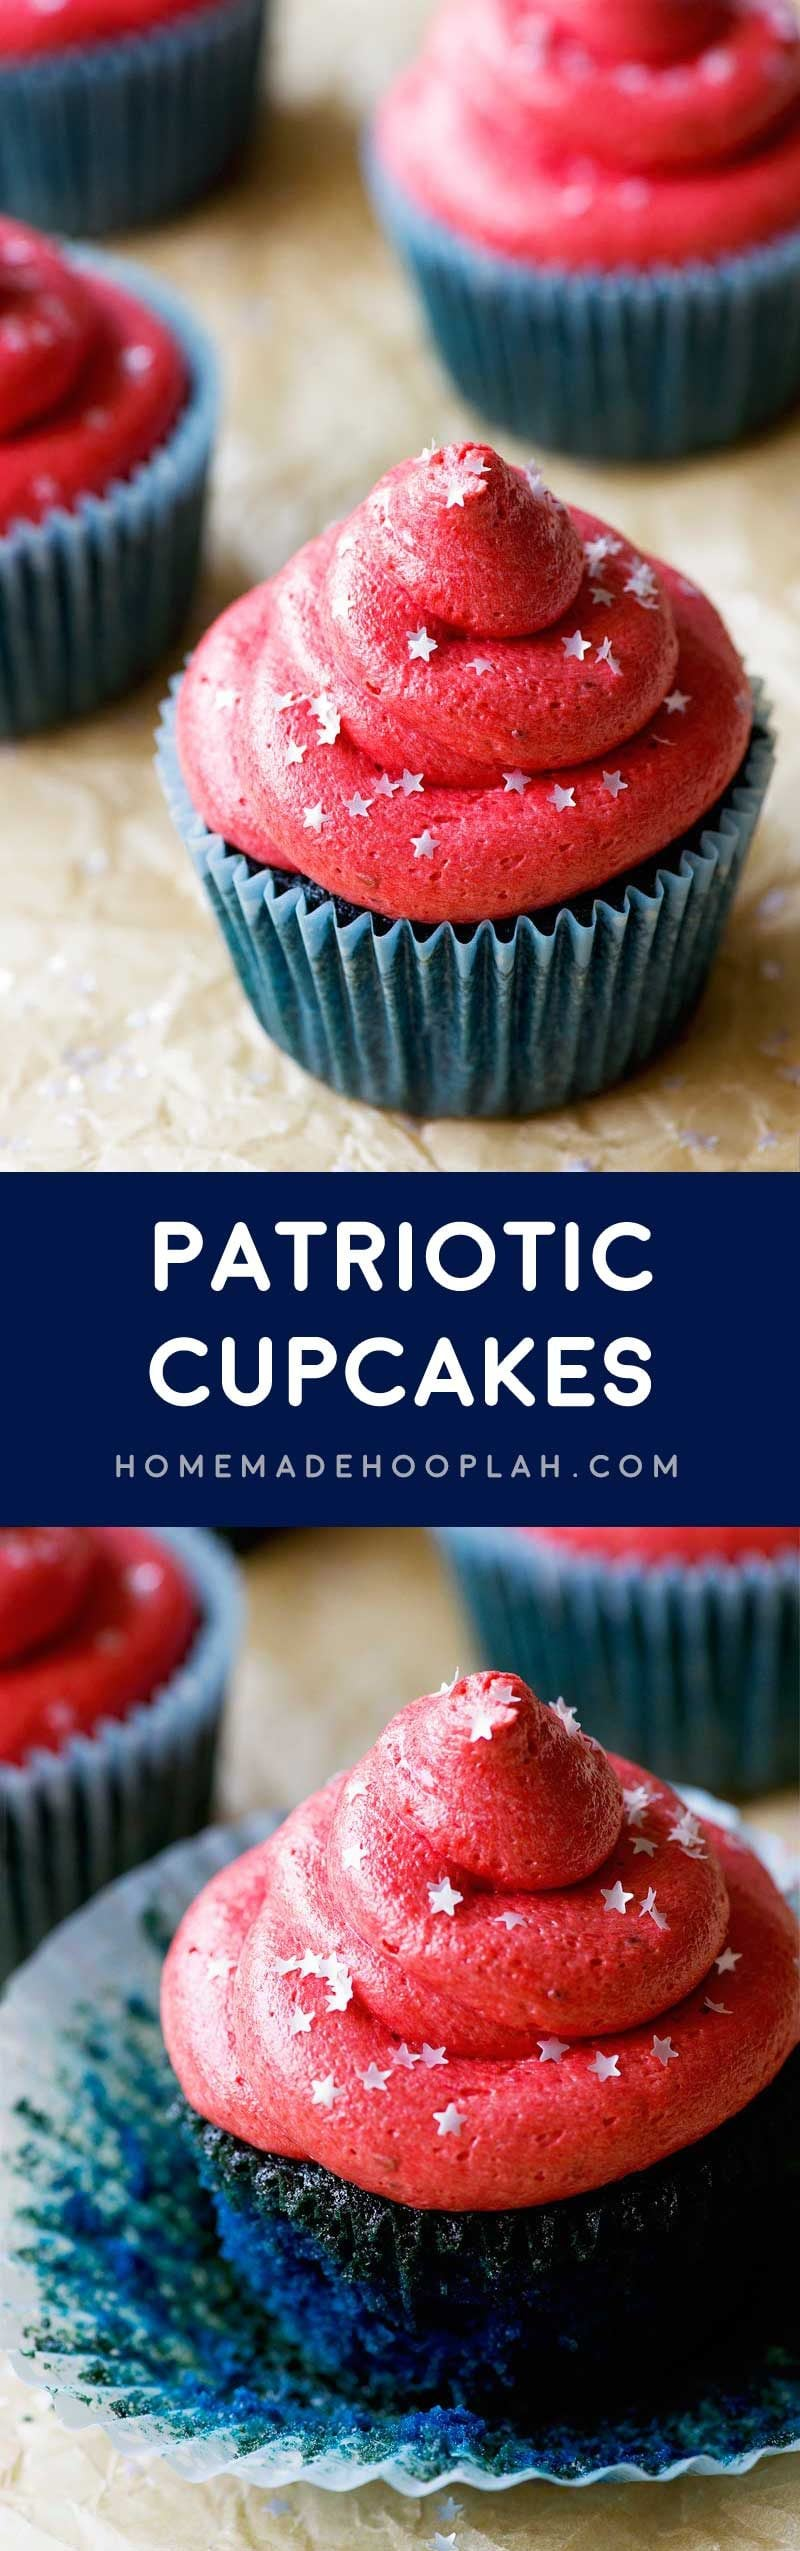 Patriotic Cupcakes! Celebrate the biggest summer holiday with these blue velvet cupcakes topped with real strawberry buttercream and sprinkled with silver edible star glitter. | HomemadeHooplah.com